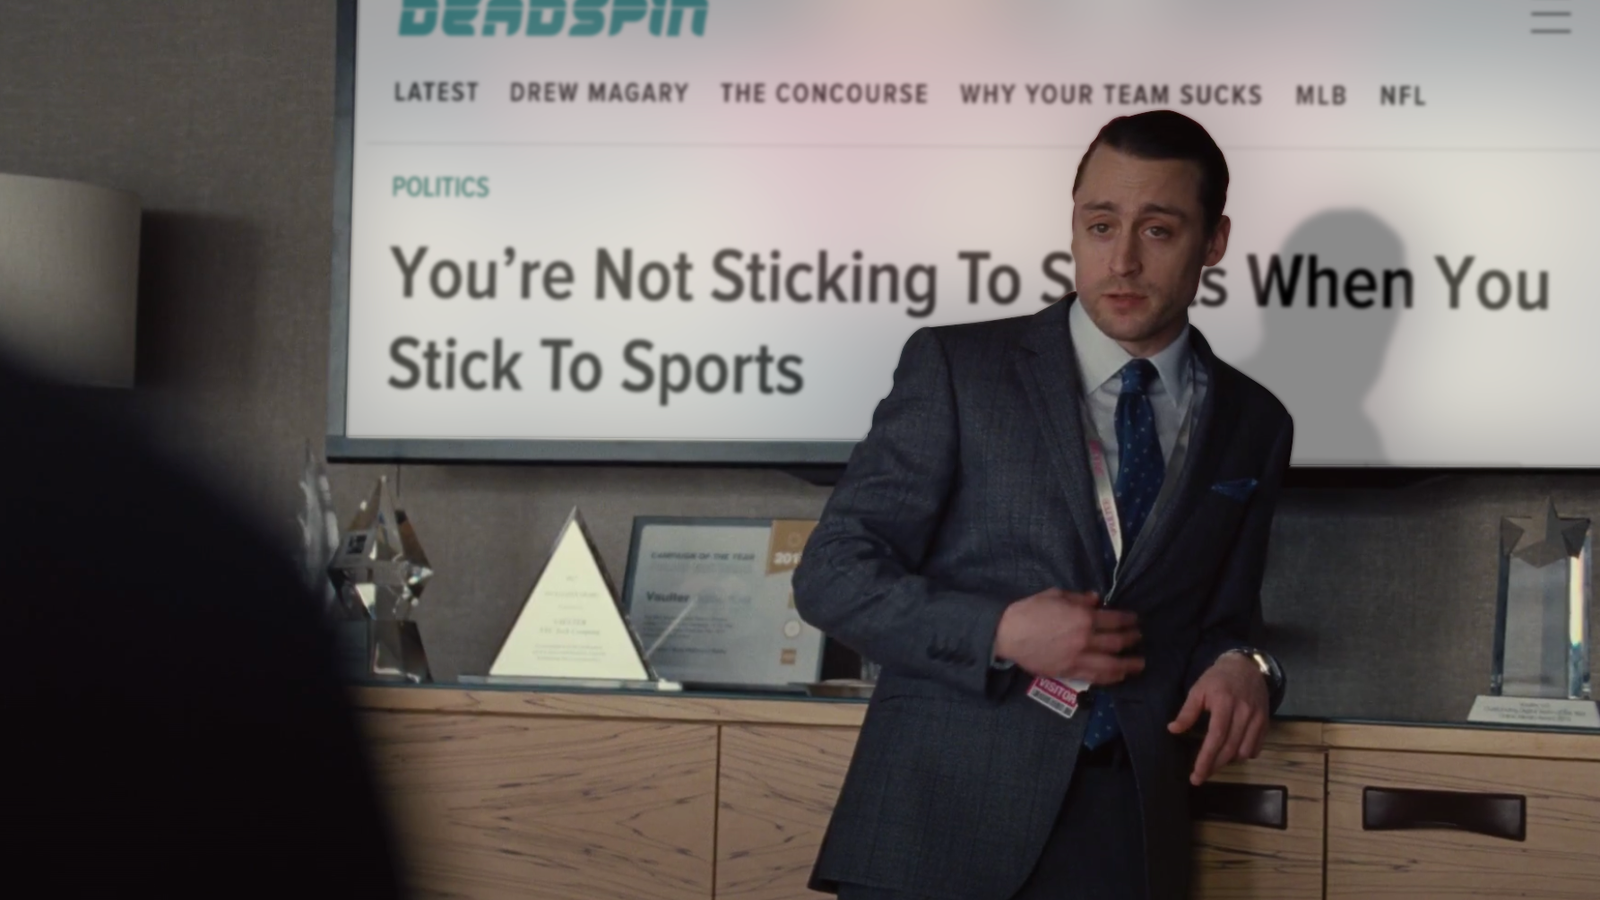 theconcourse.deadspin.com